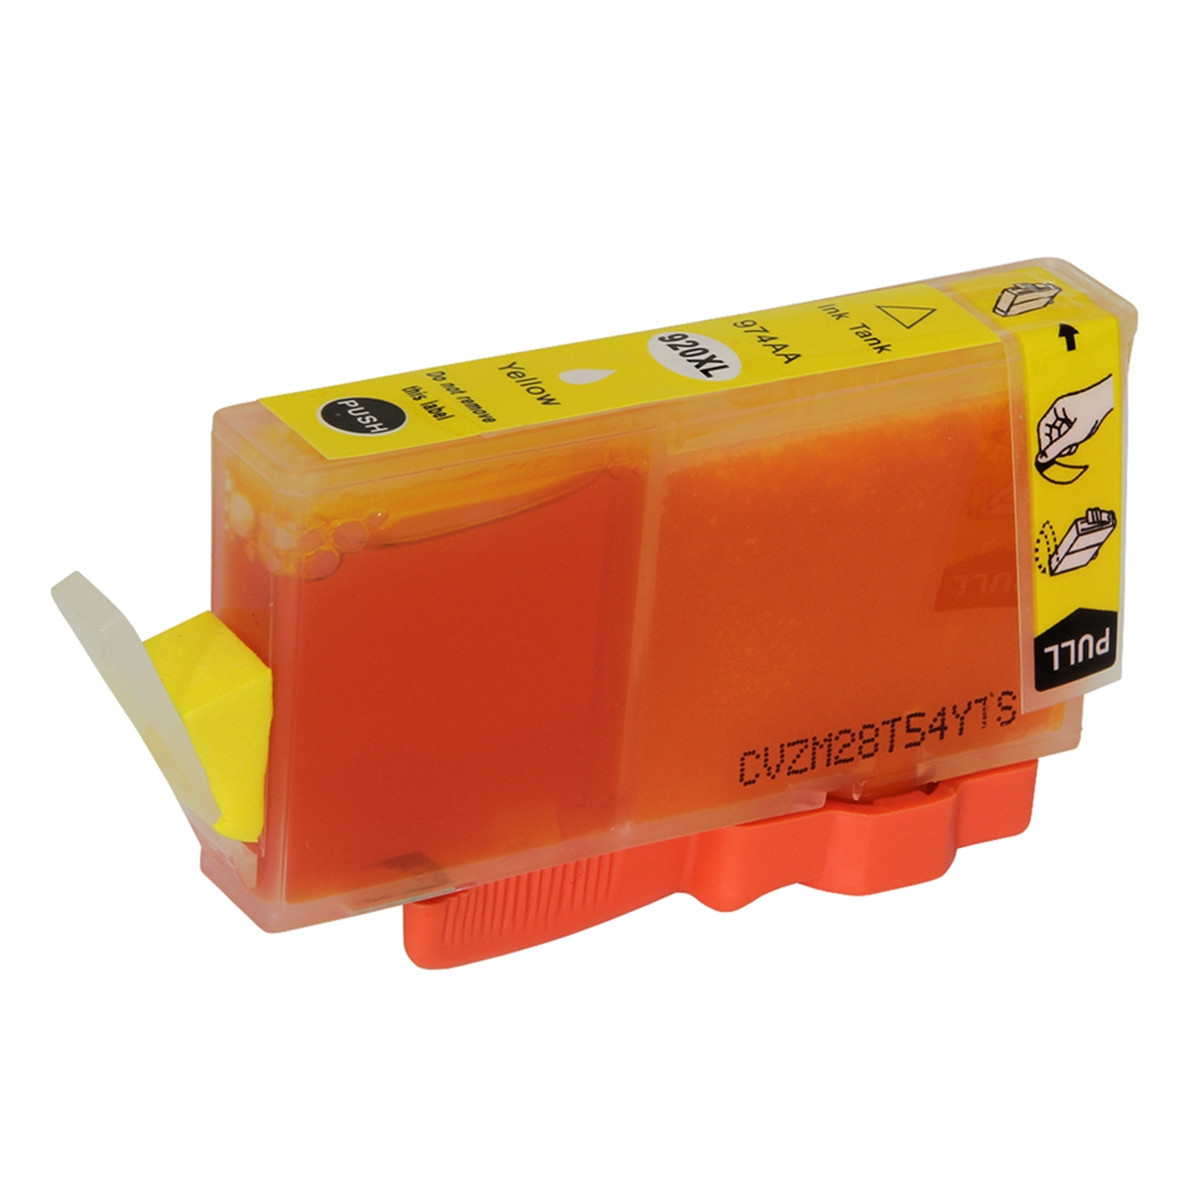 Cartucho de Tinta Compatível com HP 920XL 920 CD974AL Amarelo | 6500 Officejet 6000 E709 | 13ml